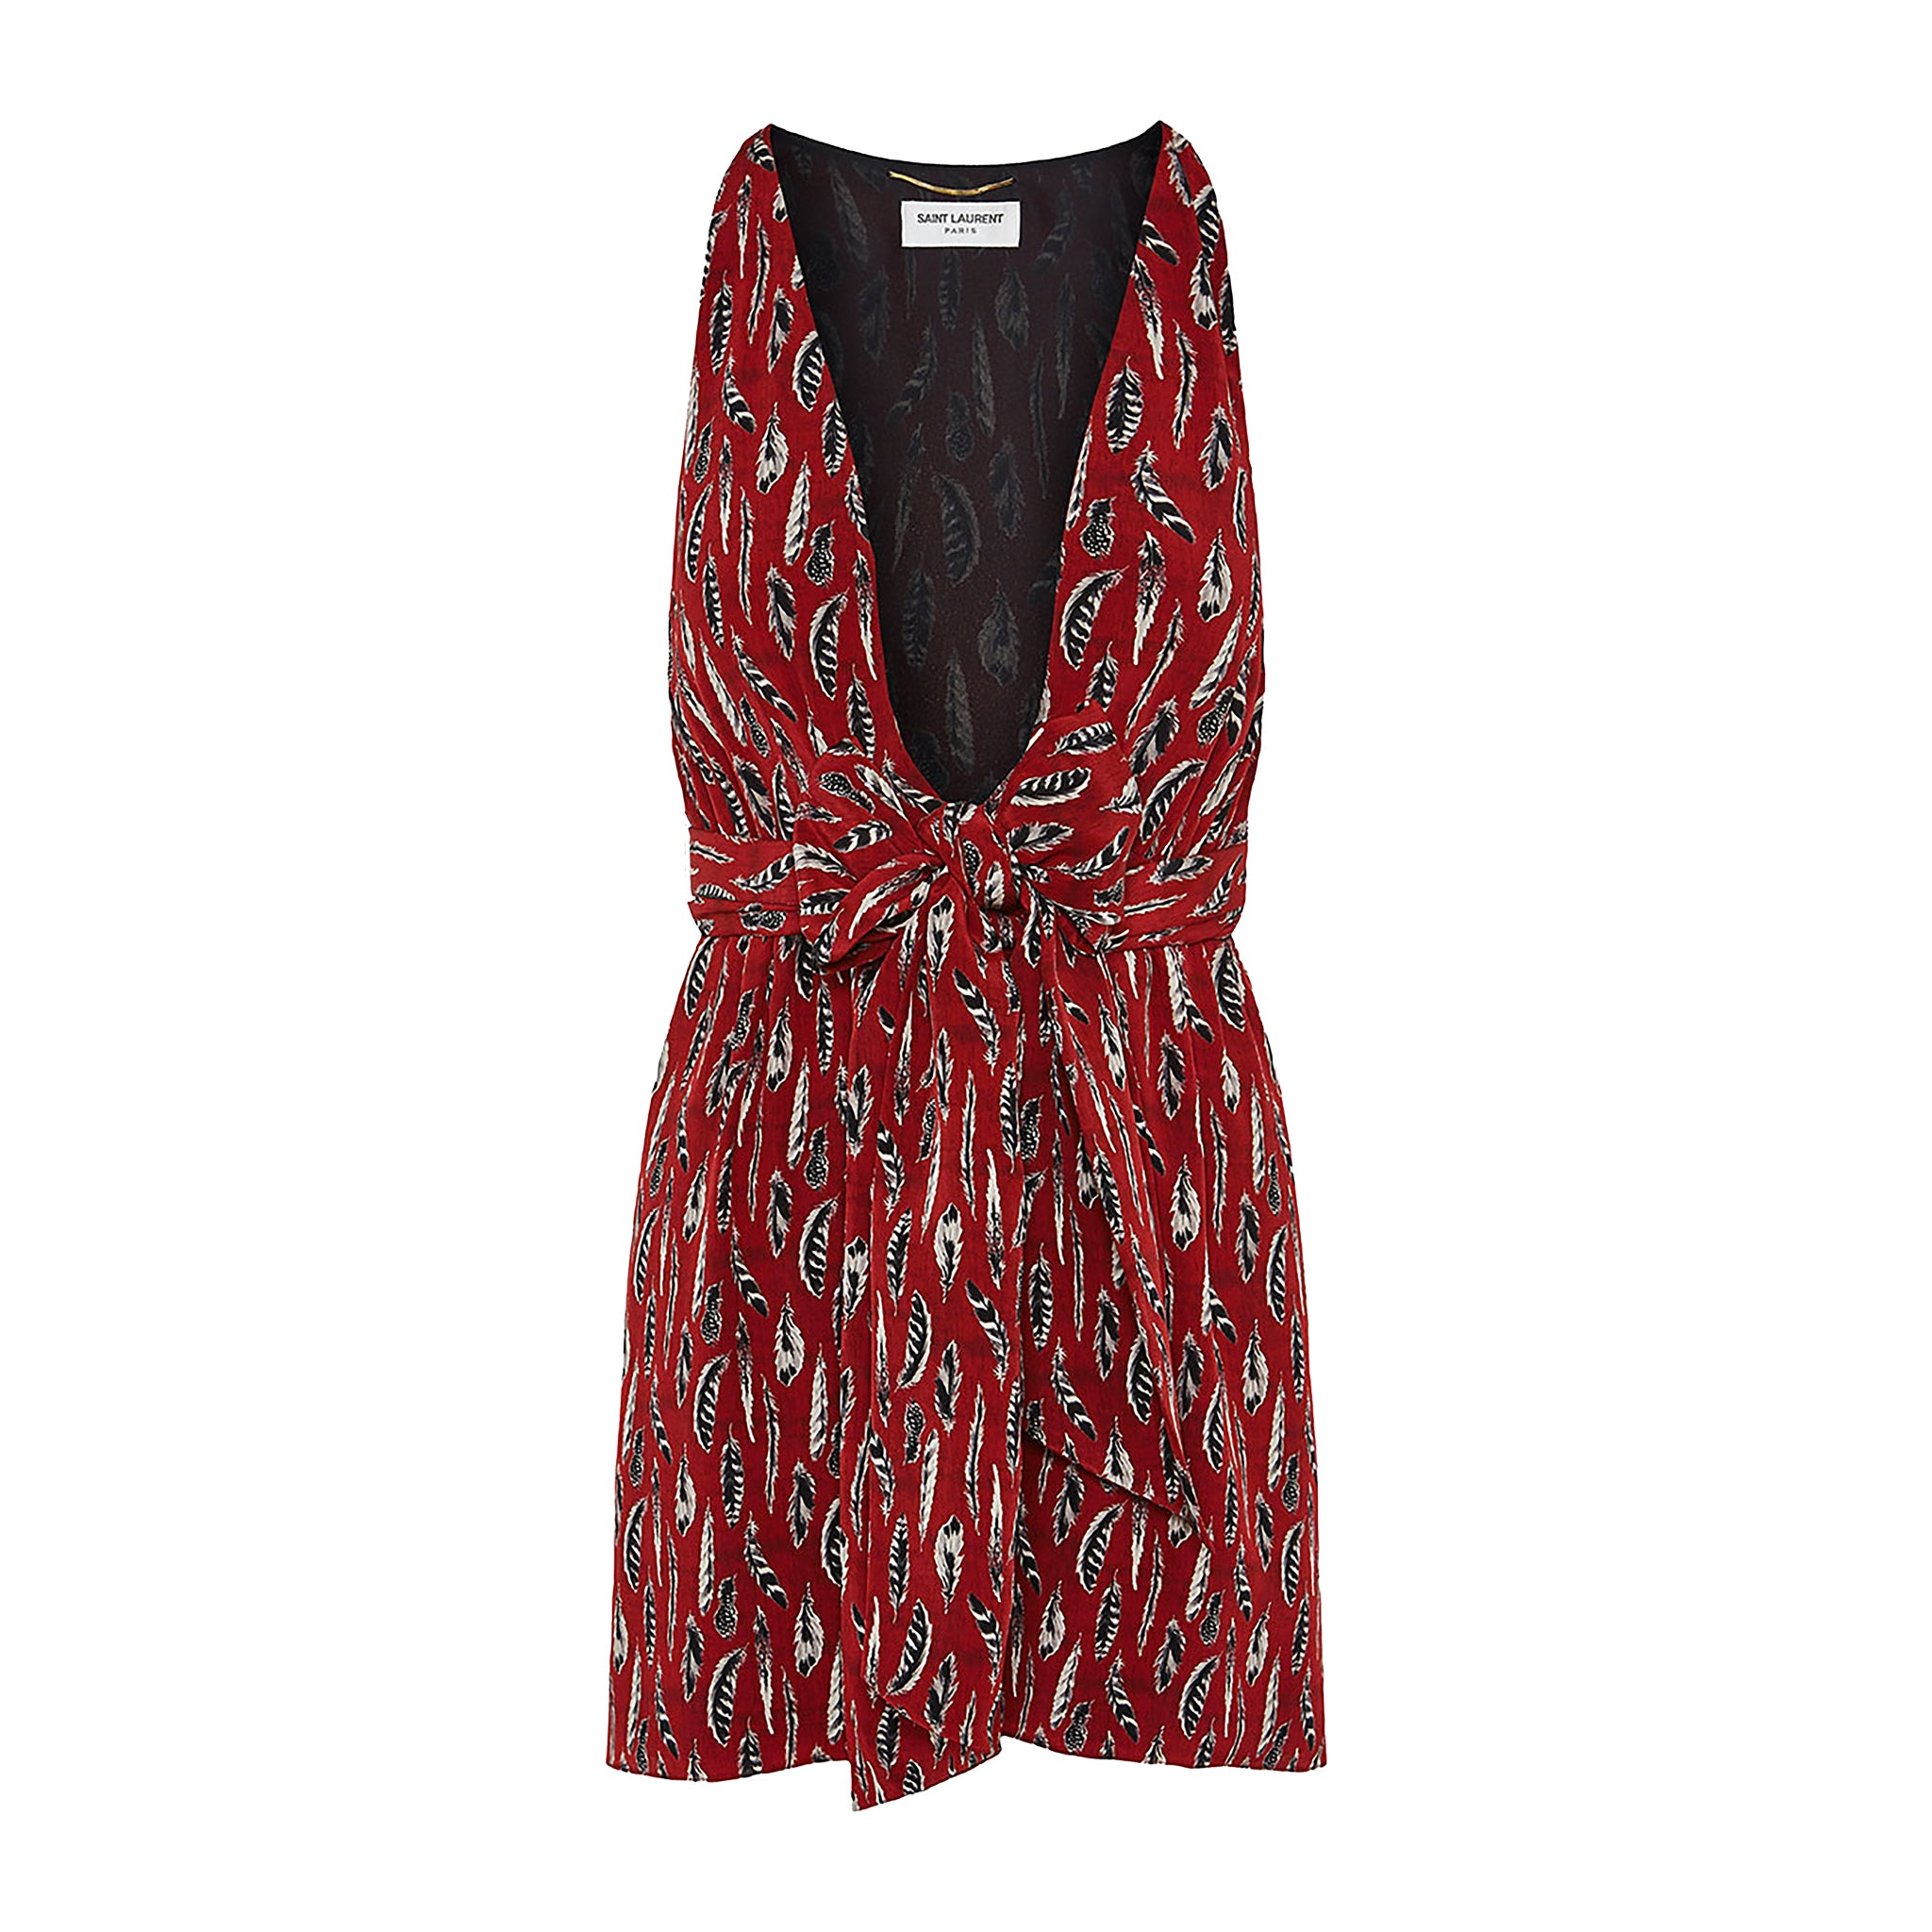 Yves Saint Laurent Feather Print Mini Dress